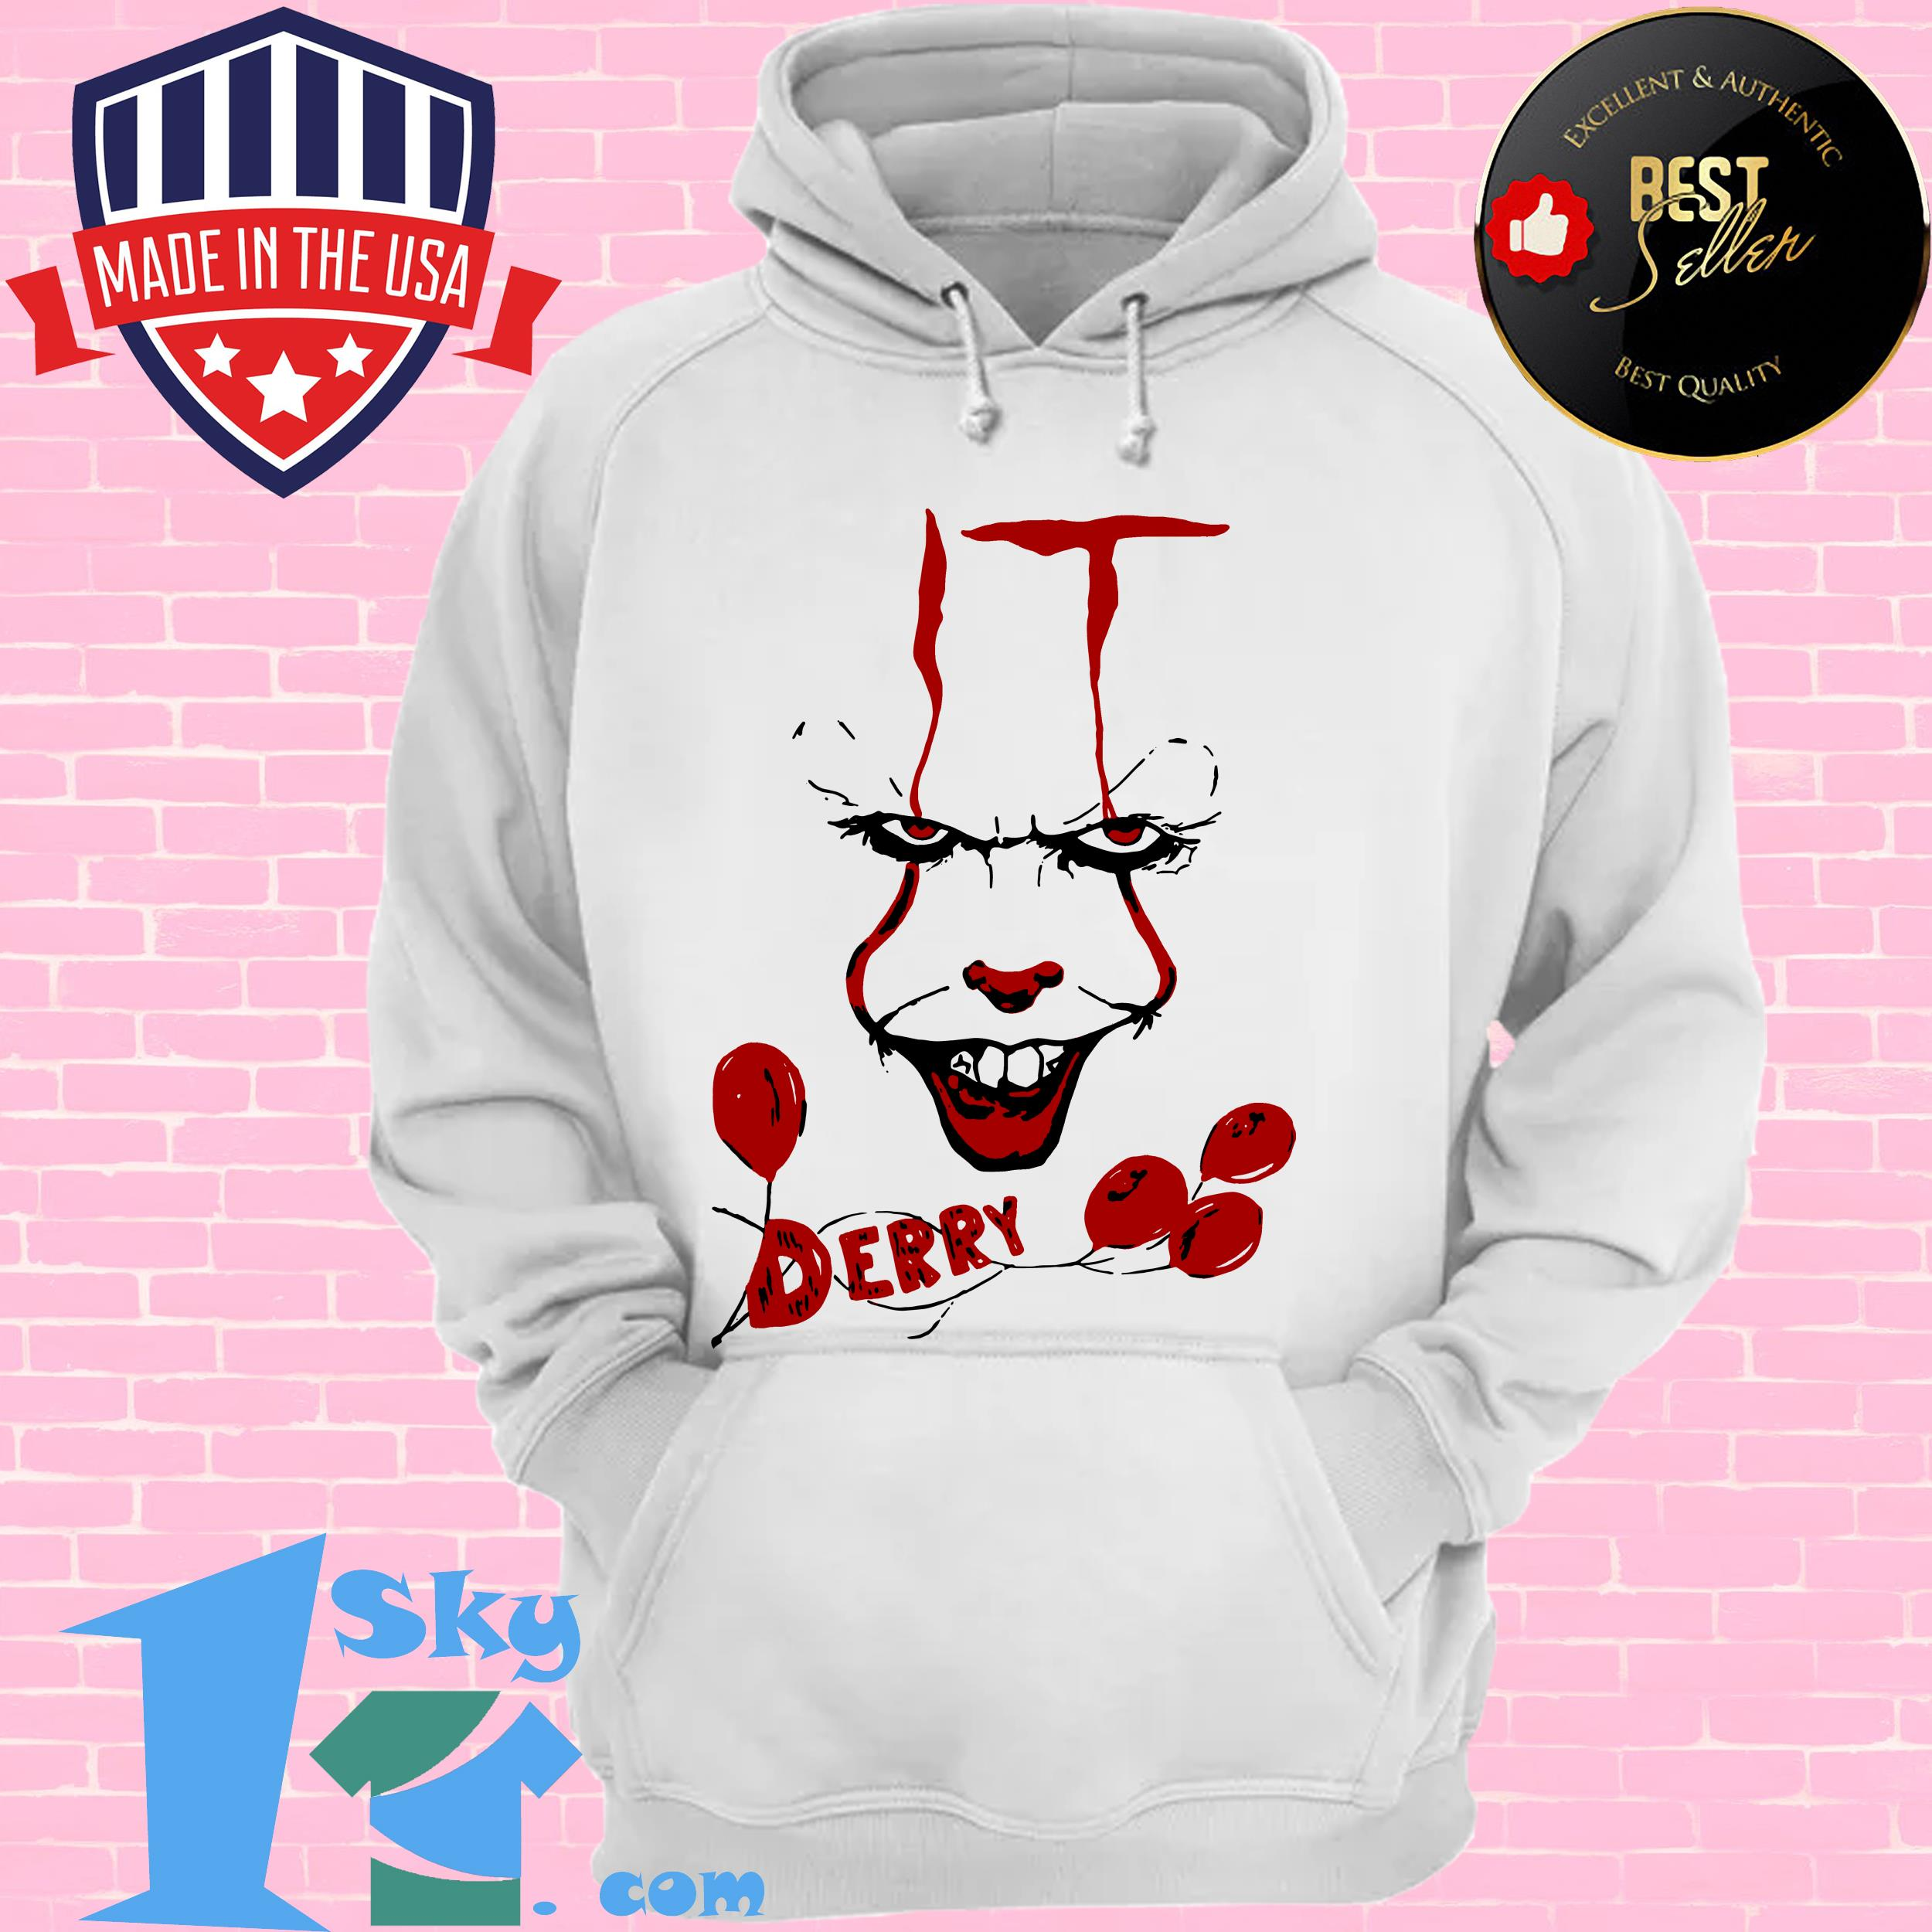 it pennywise killer clown chud stephen king derry maine hoodie - IT Pennywise Killer Clown Chud Stephen King Derry Maine shirt